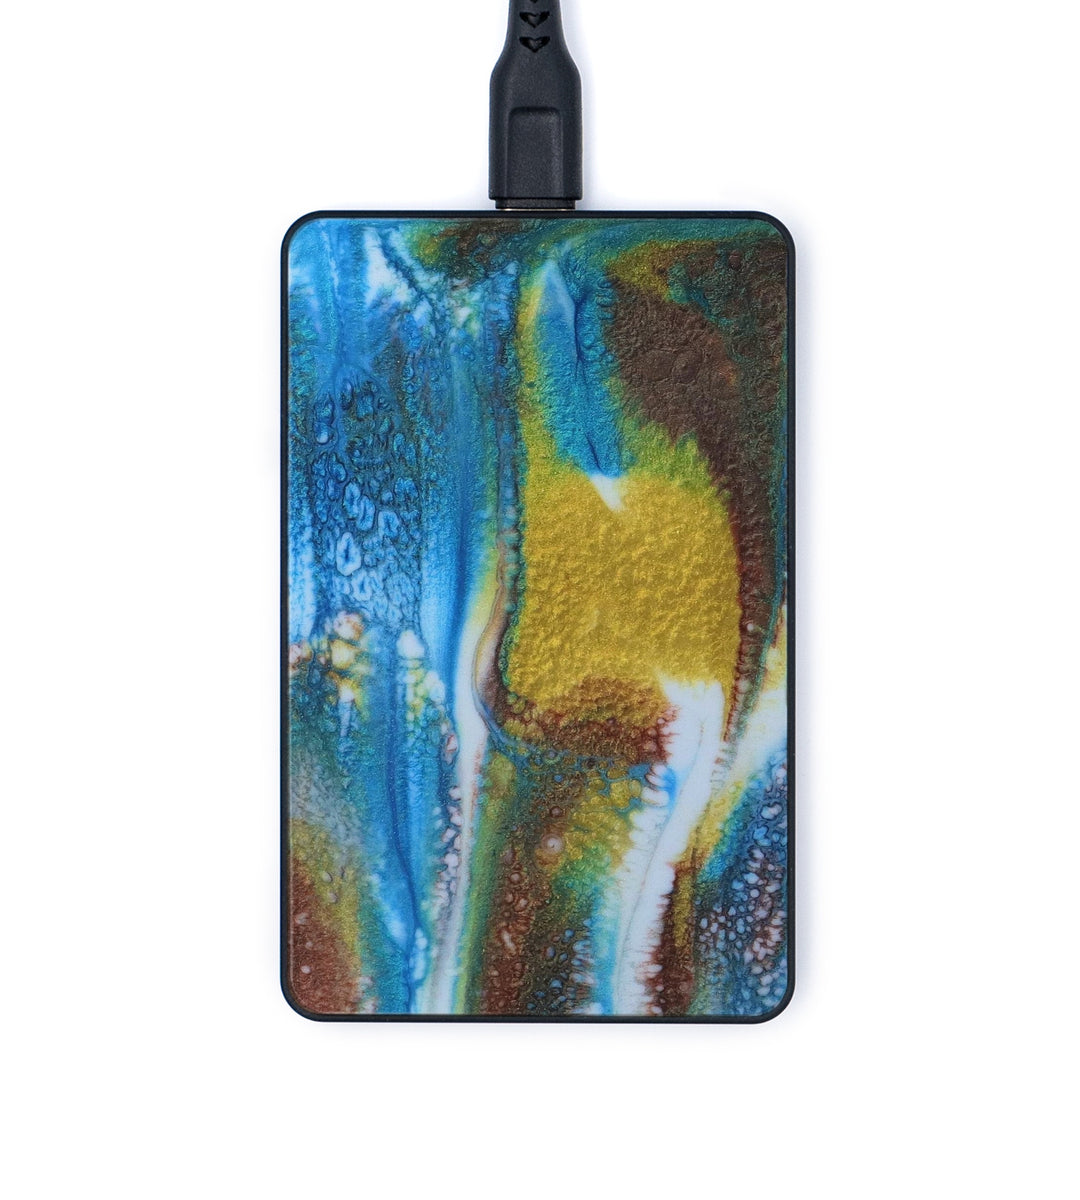 Thin Wireless Charger - Cinda (Teal & Gold, 345928)